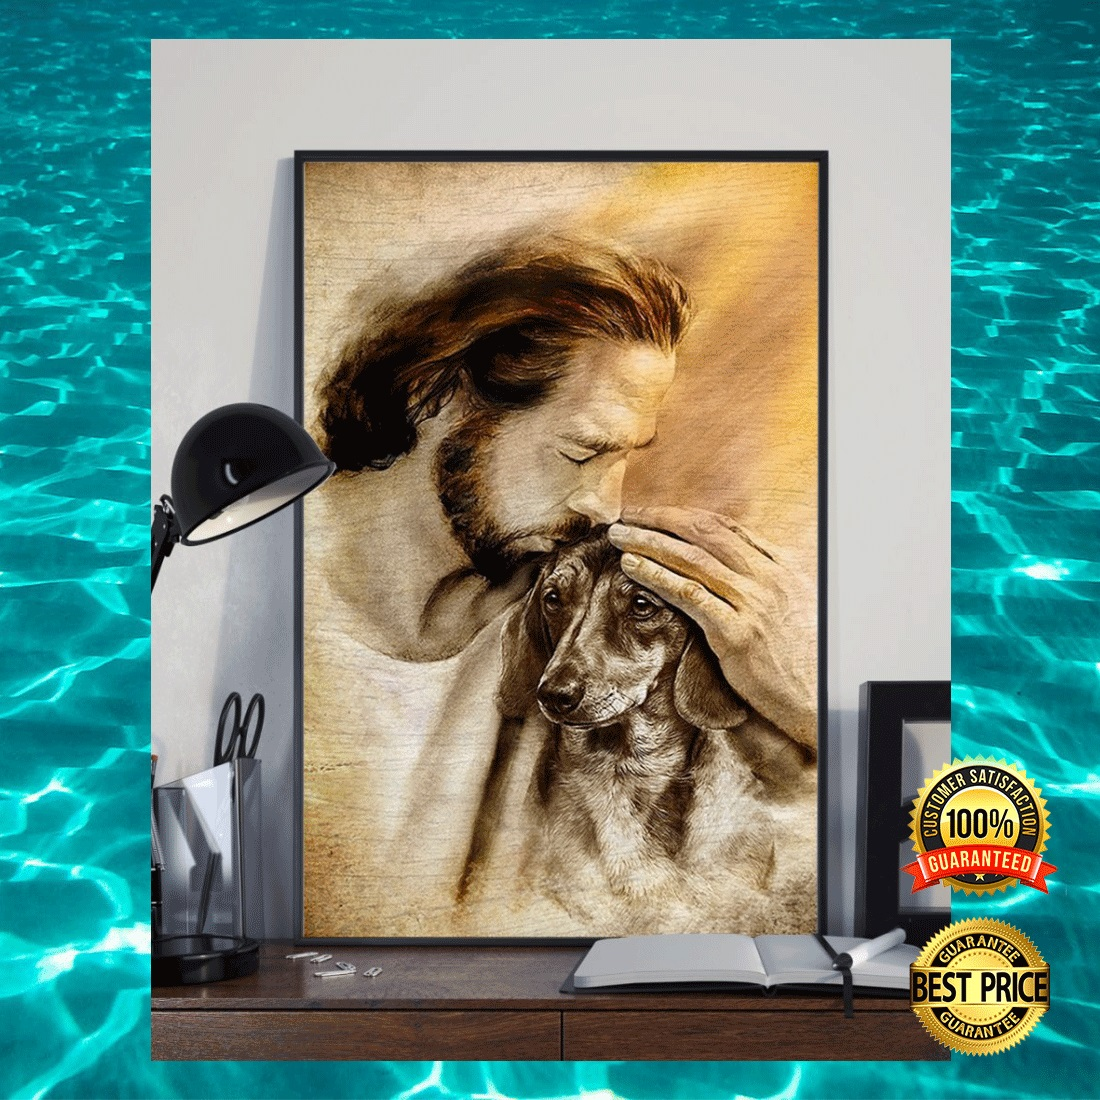 JESUS WITH LOVELY DACHSHUND POSTER 4